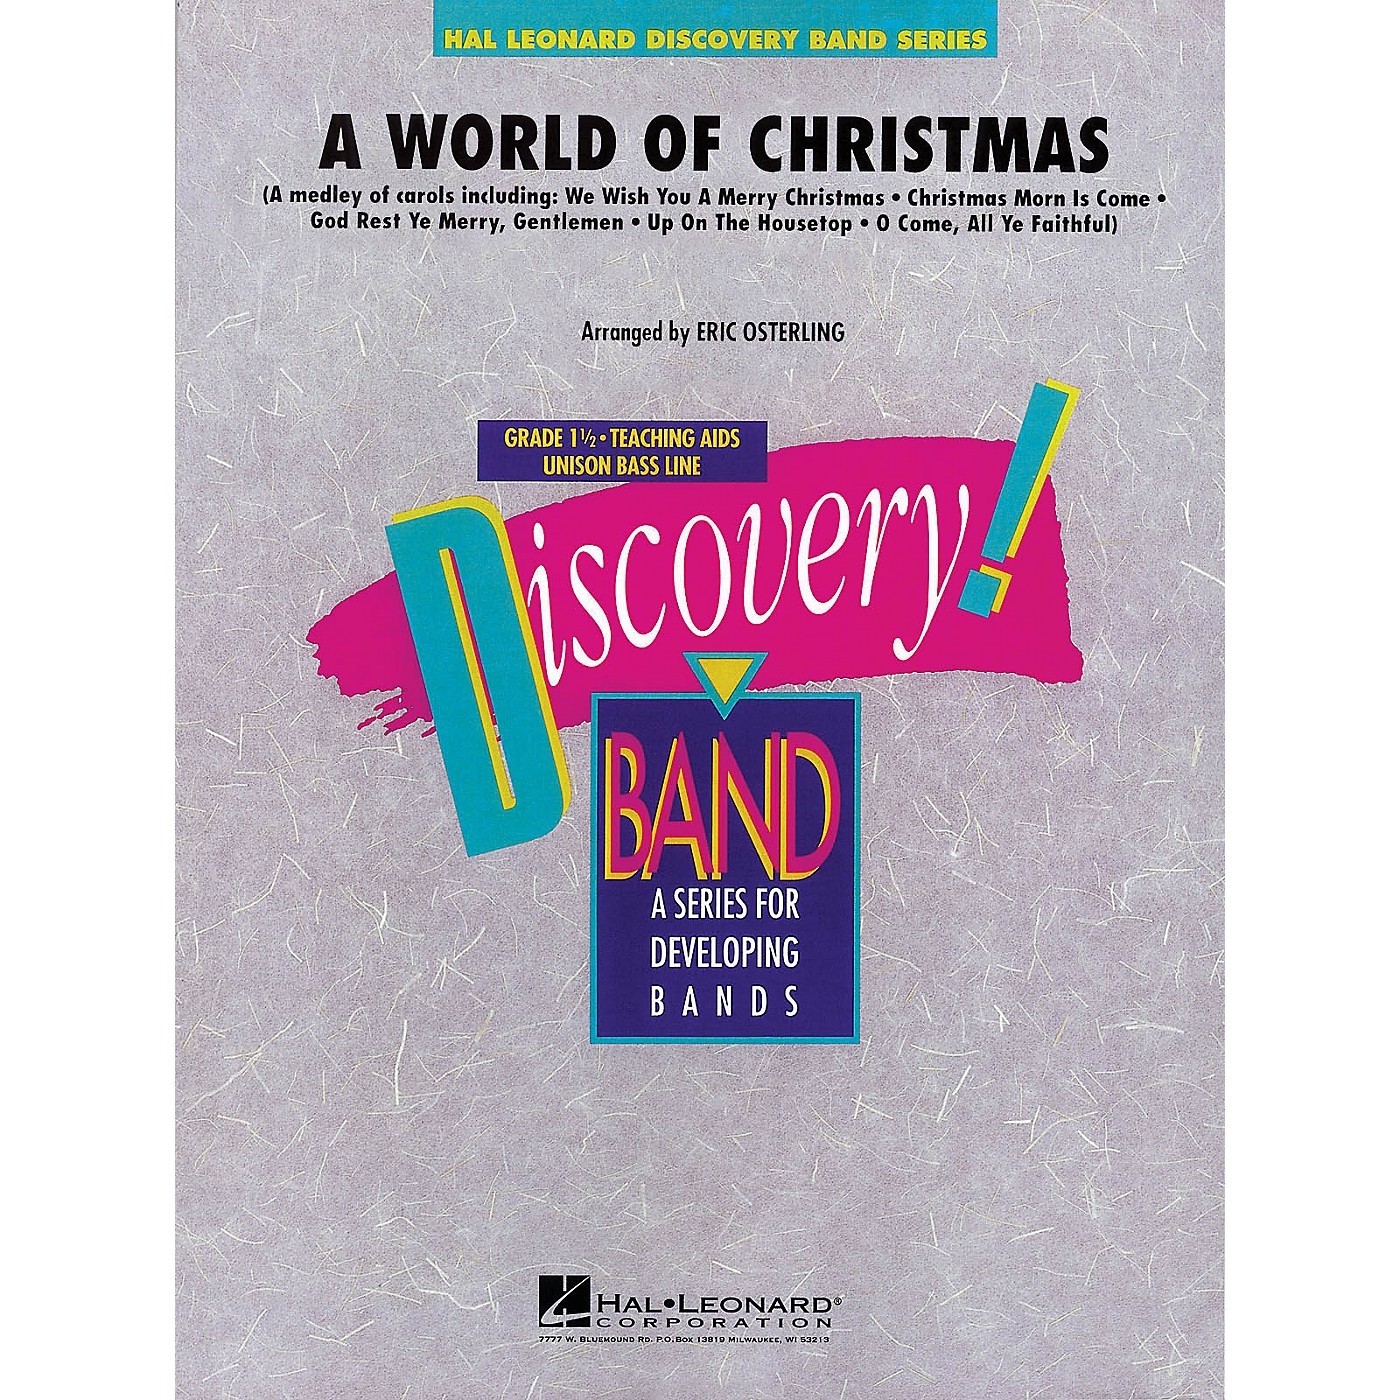 Hal Leonard A World of Christmas Concert Band Level 1.5 Arranged by Eric Osterling thumbnail